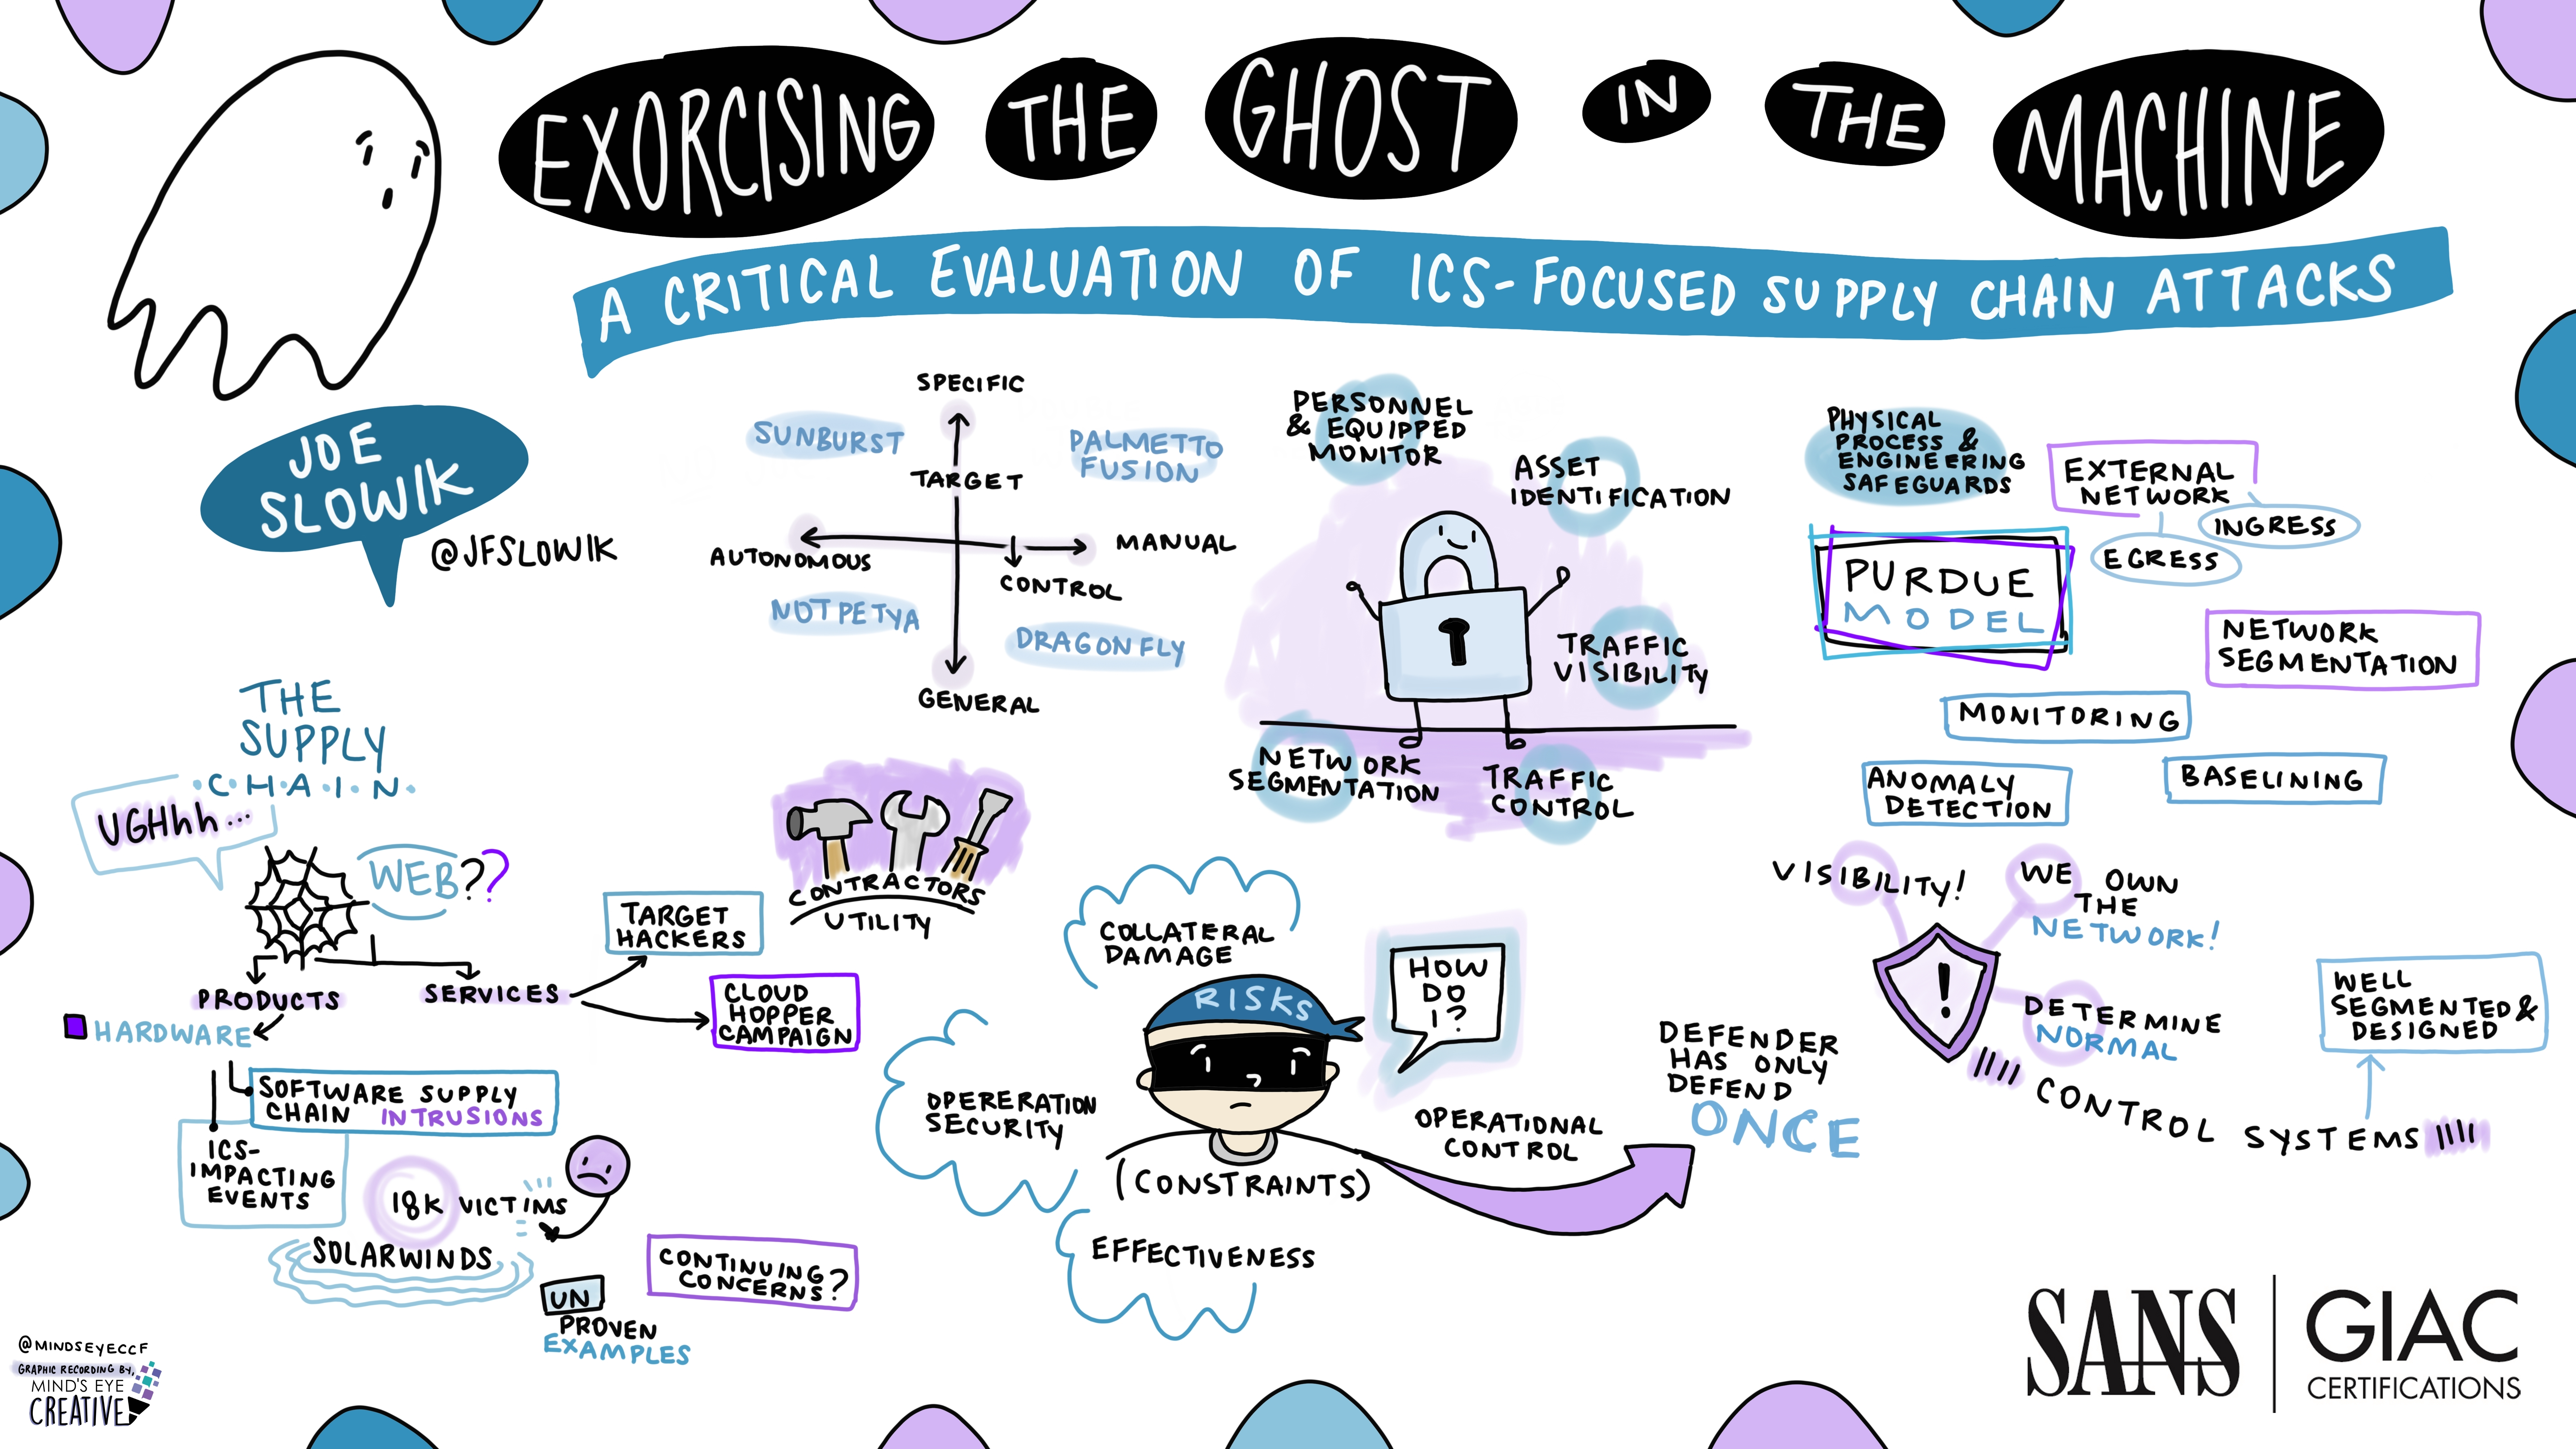 Exorcising_the_Ghost_in_the_Machine_-_A_Critical_Evaluation_of_the_ICS-Focused_Supply_Chain_Attacks_Joe_Slowik.jpg